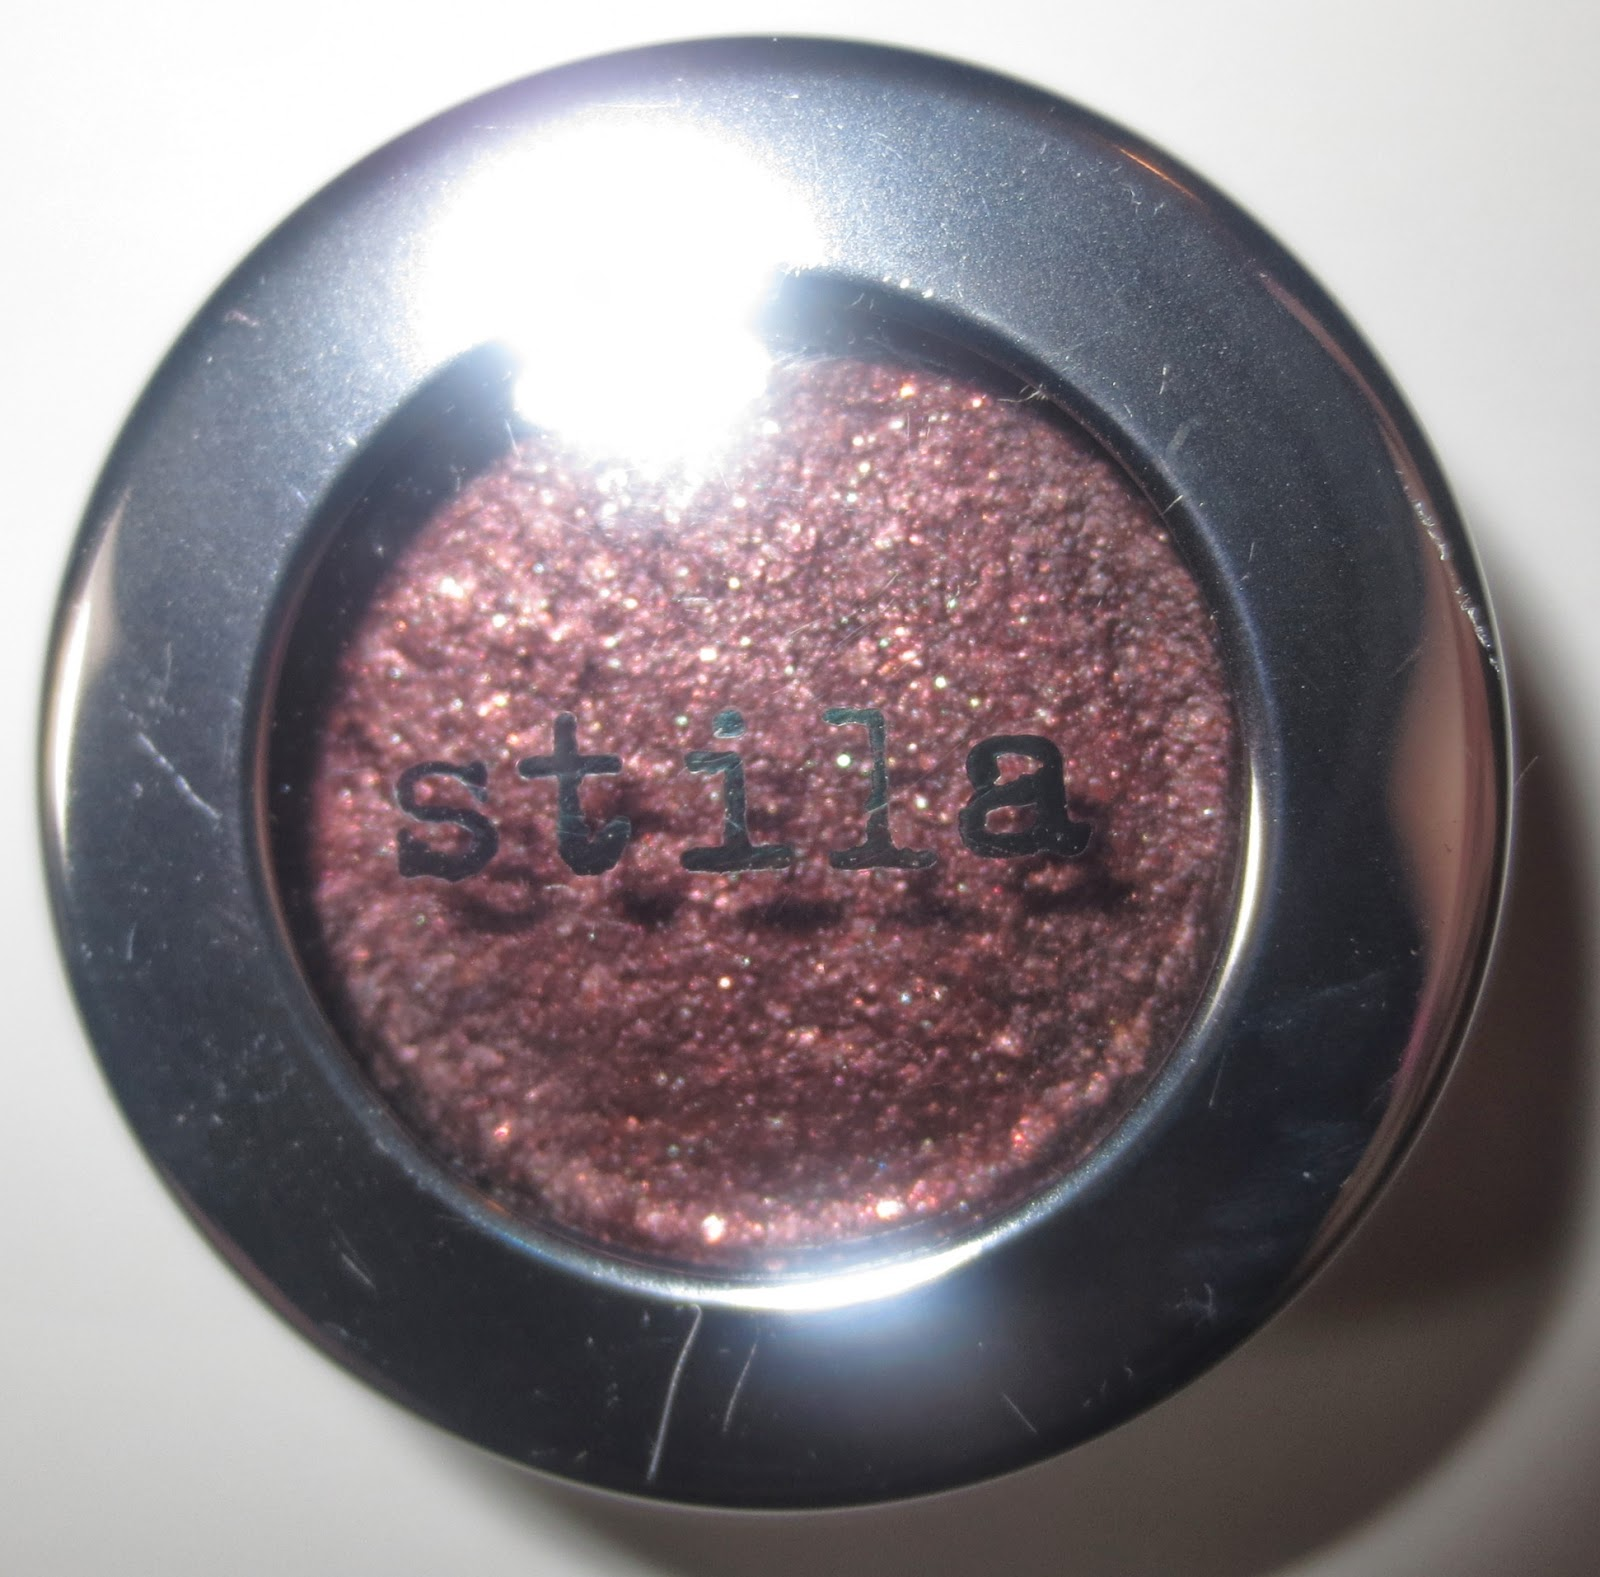 Stila Magnificent Metals Foil Finish Eye Shadow - Metallic Merlot